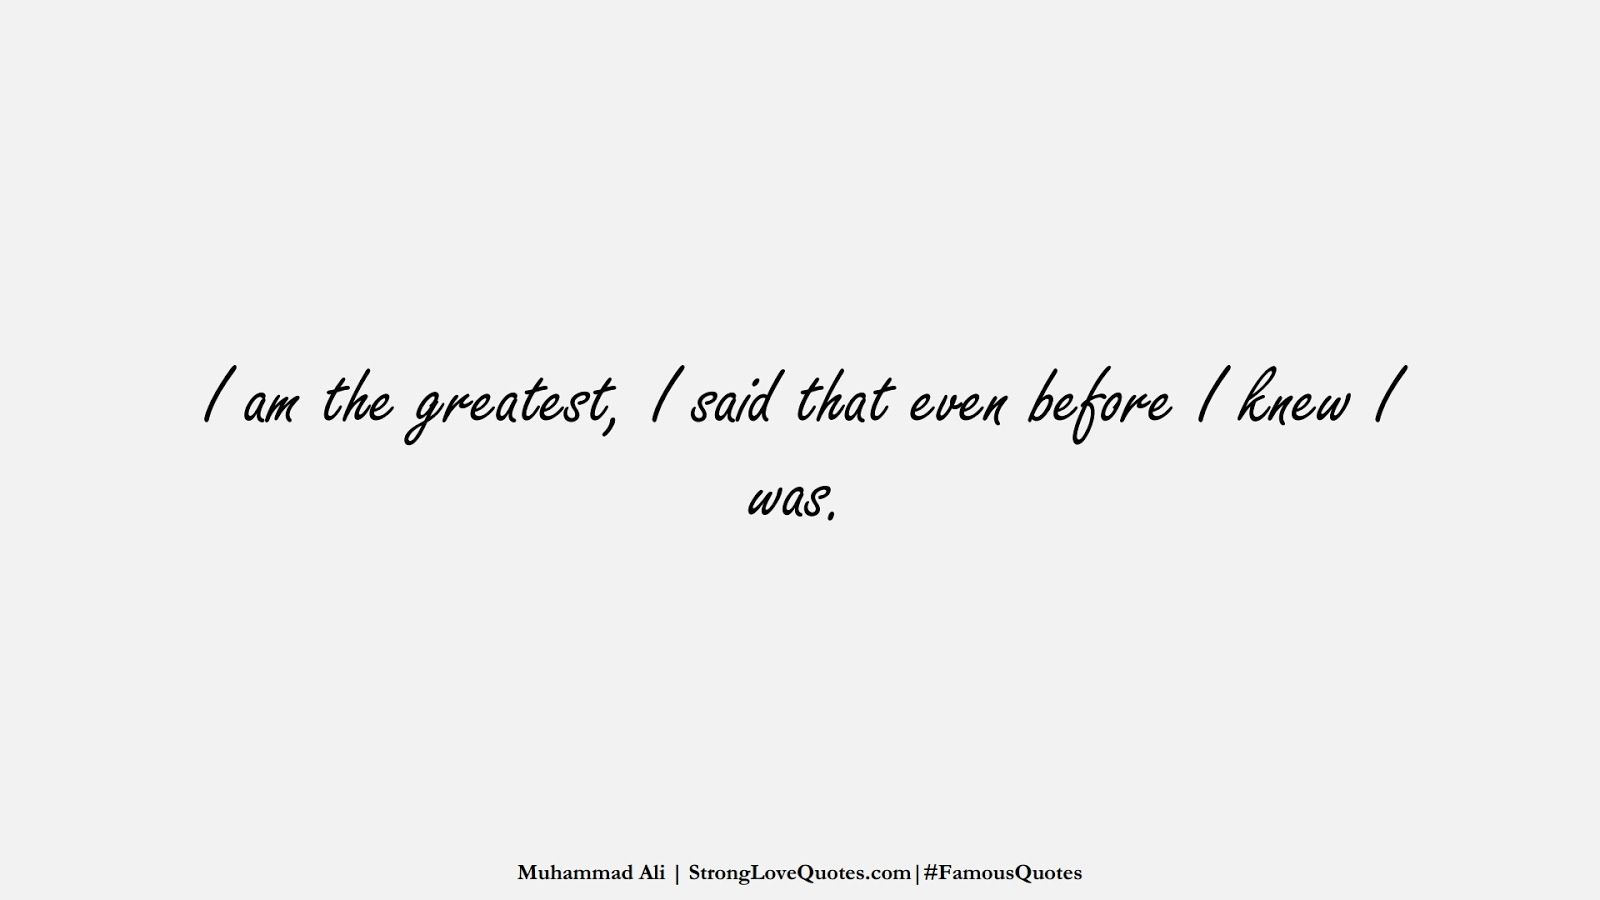 I am the greatest, I said that even before I knew I was. (Muhammad Ali);  #FamousQuotes